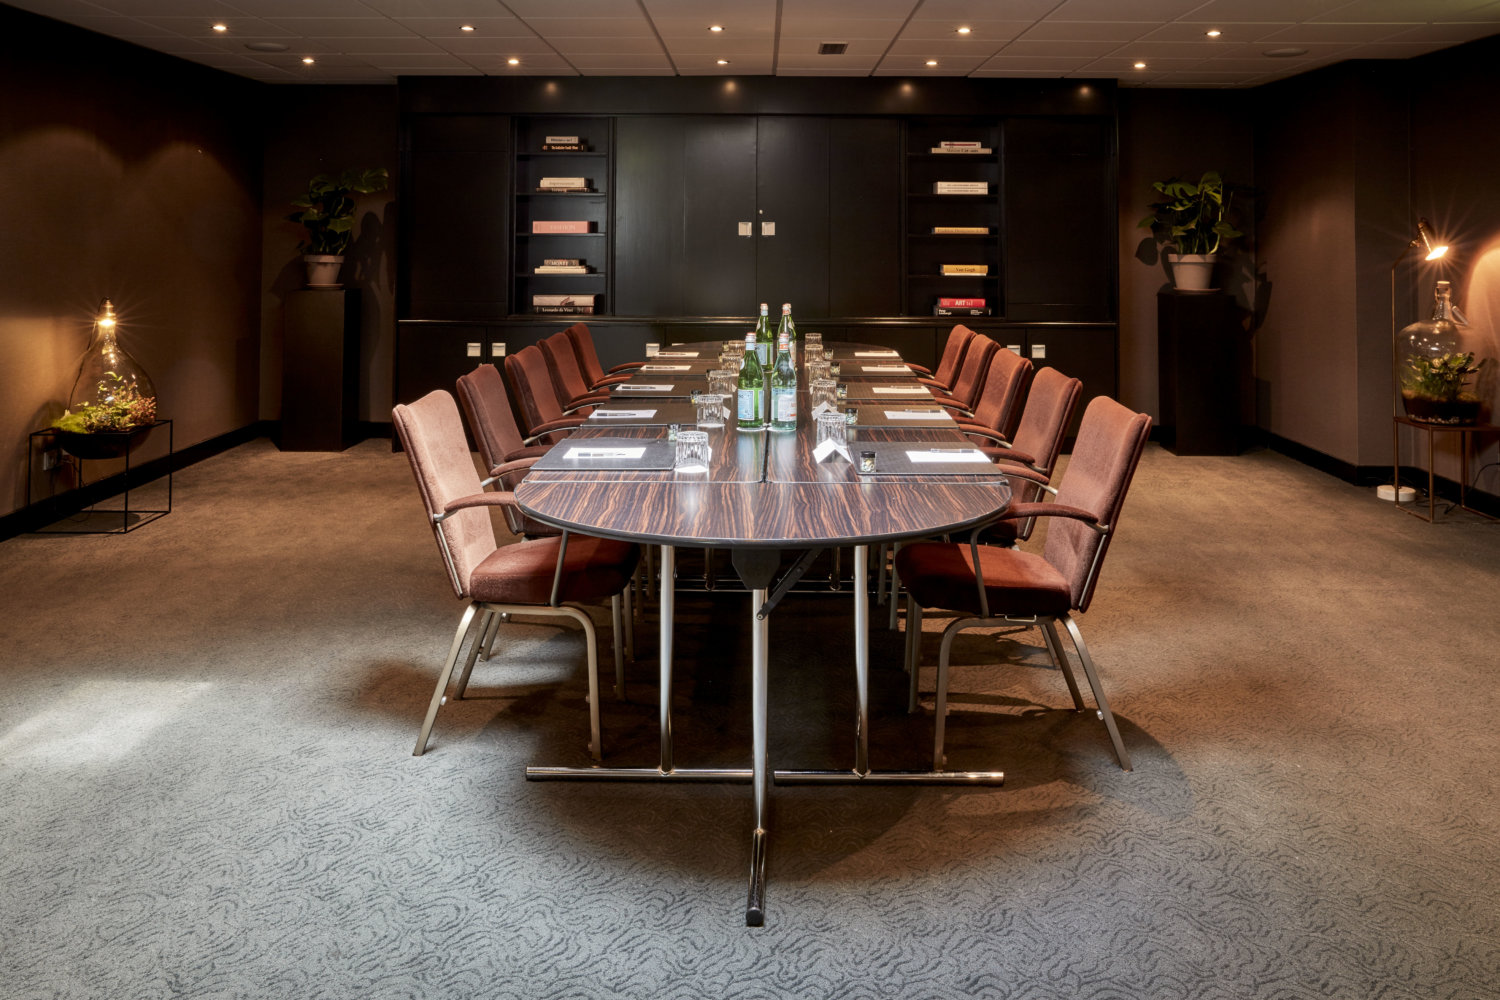 Park Hotel amsterdam Meeting Room Berlin